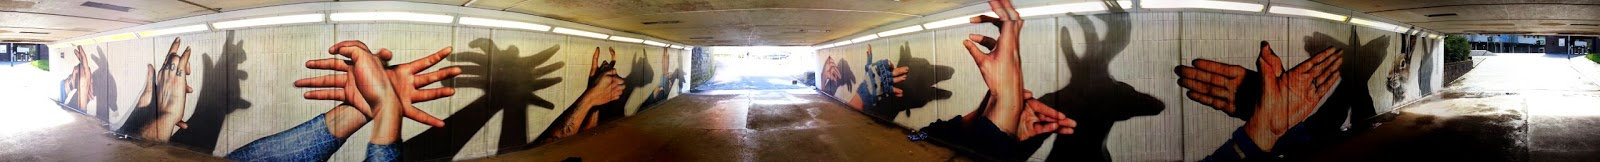 Cowcaddens Underpass, Rogue One, Artpistol, Glasgow